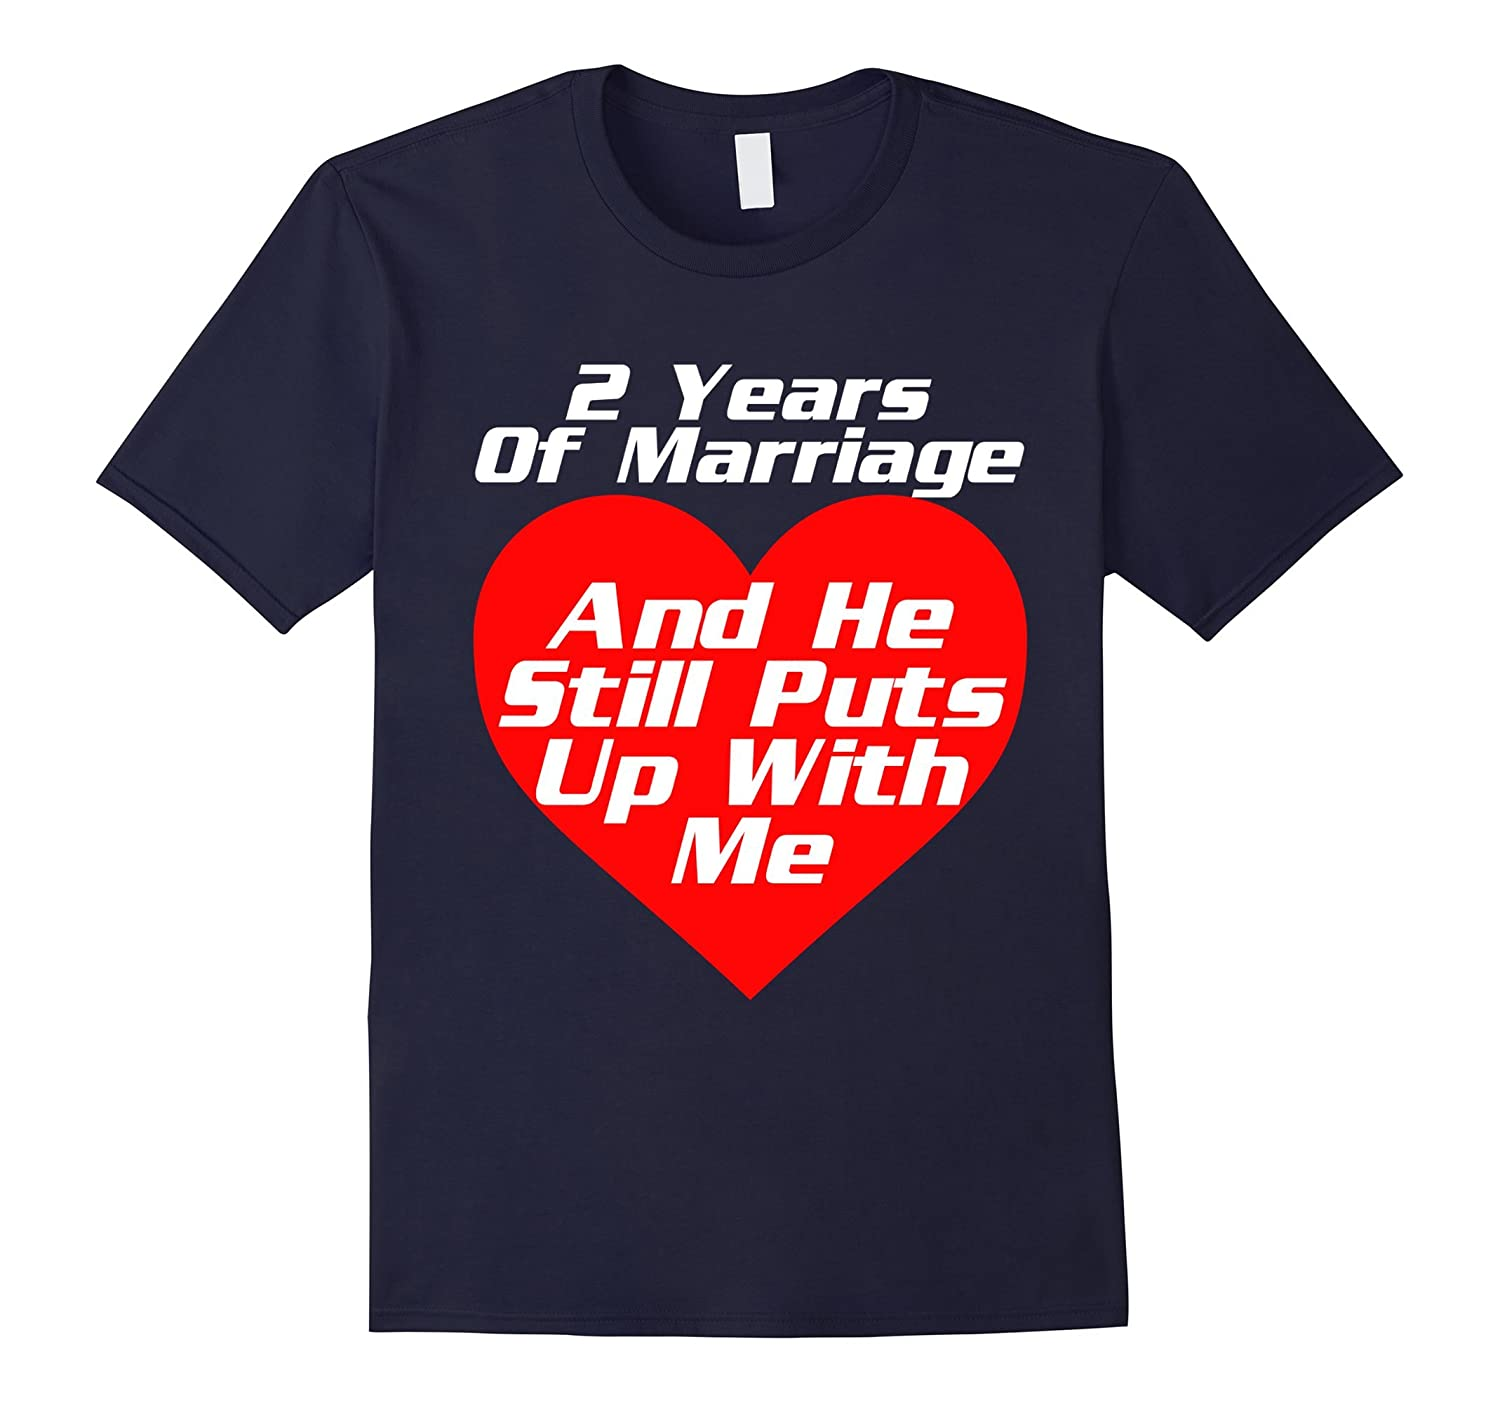 2 Years of Marriage He Still Puts Up With Me Tshirt Wedding-CD